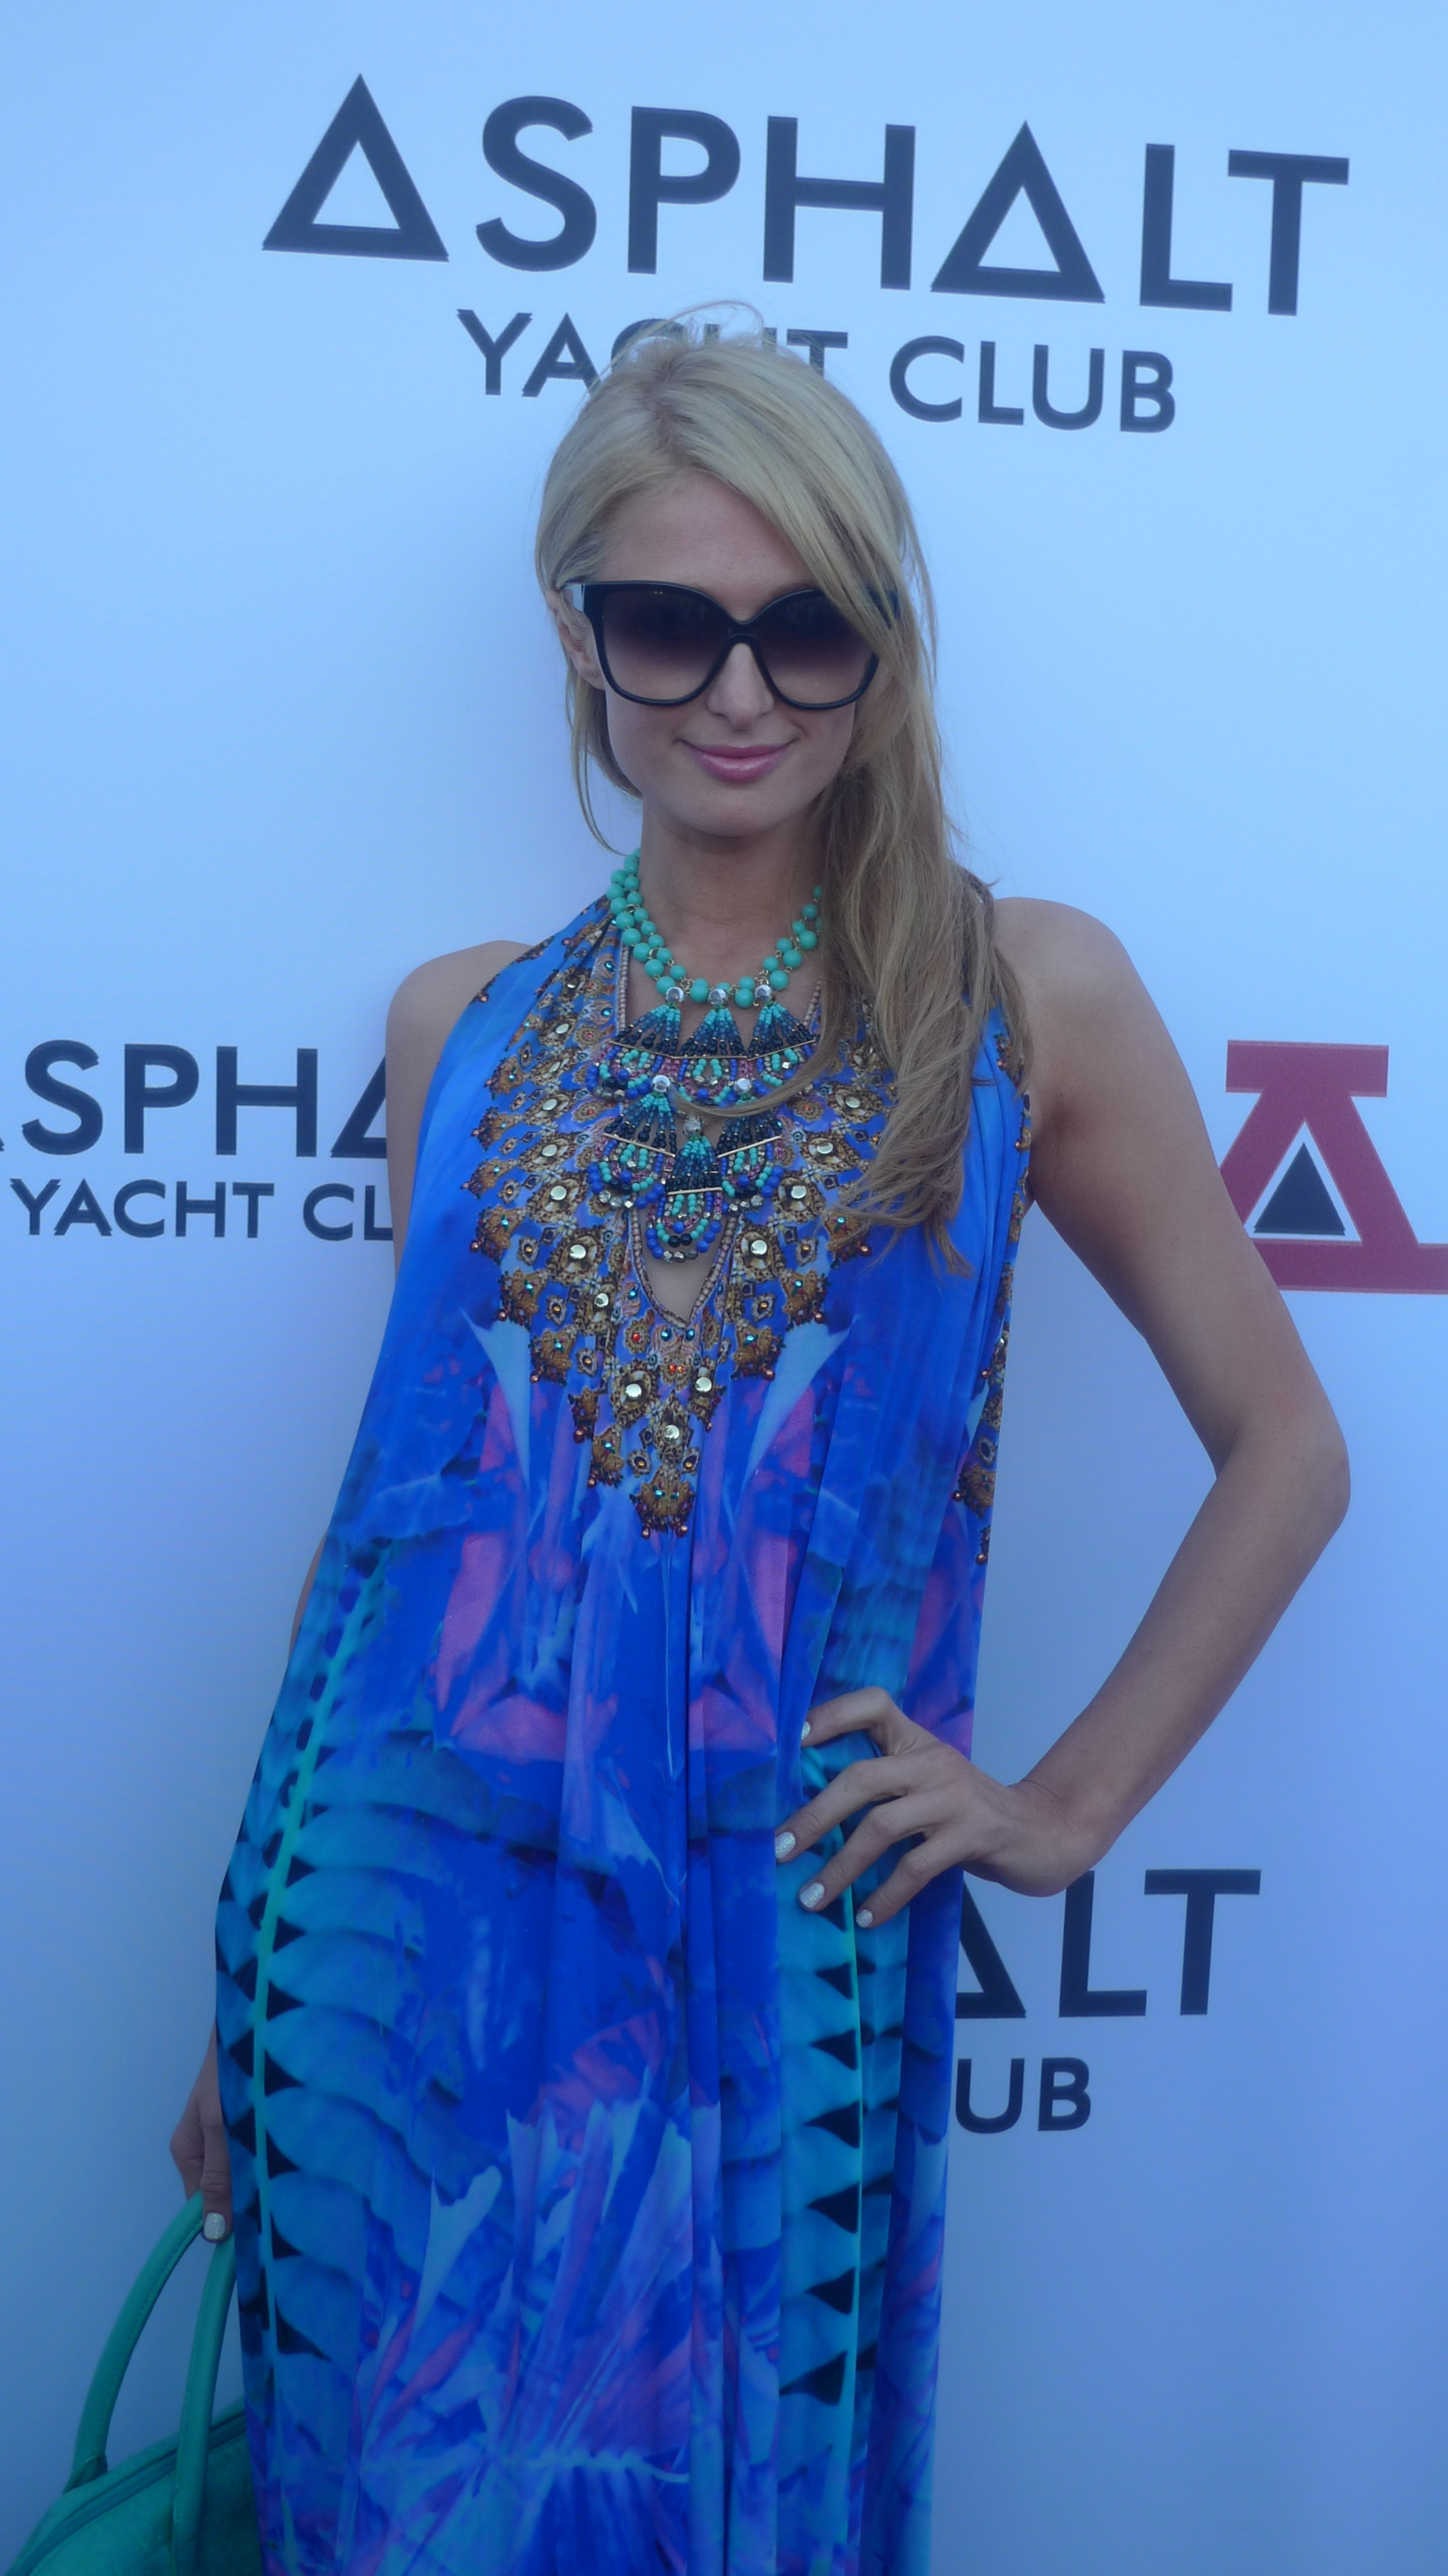 Paris Hilton at the Asphalt Yacht Club launch party in Malibu